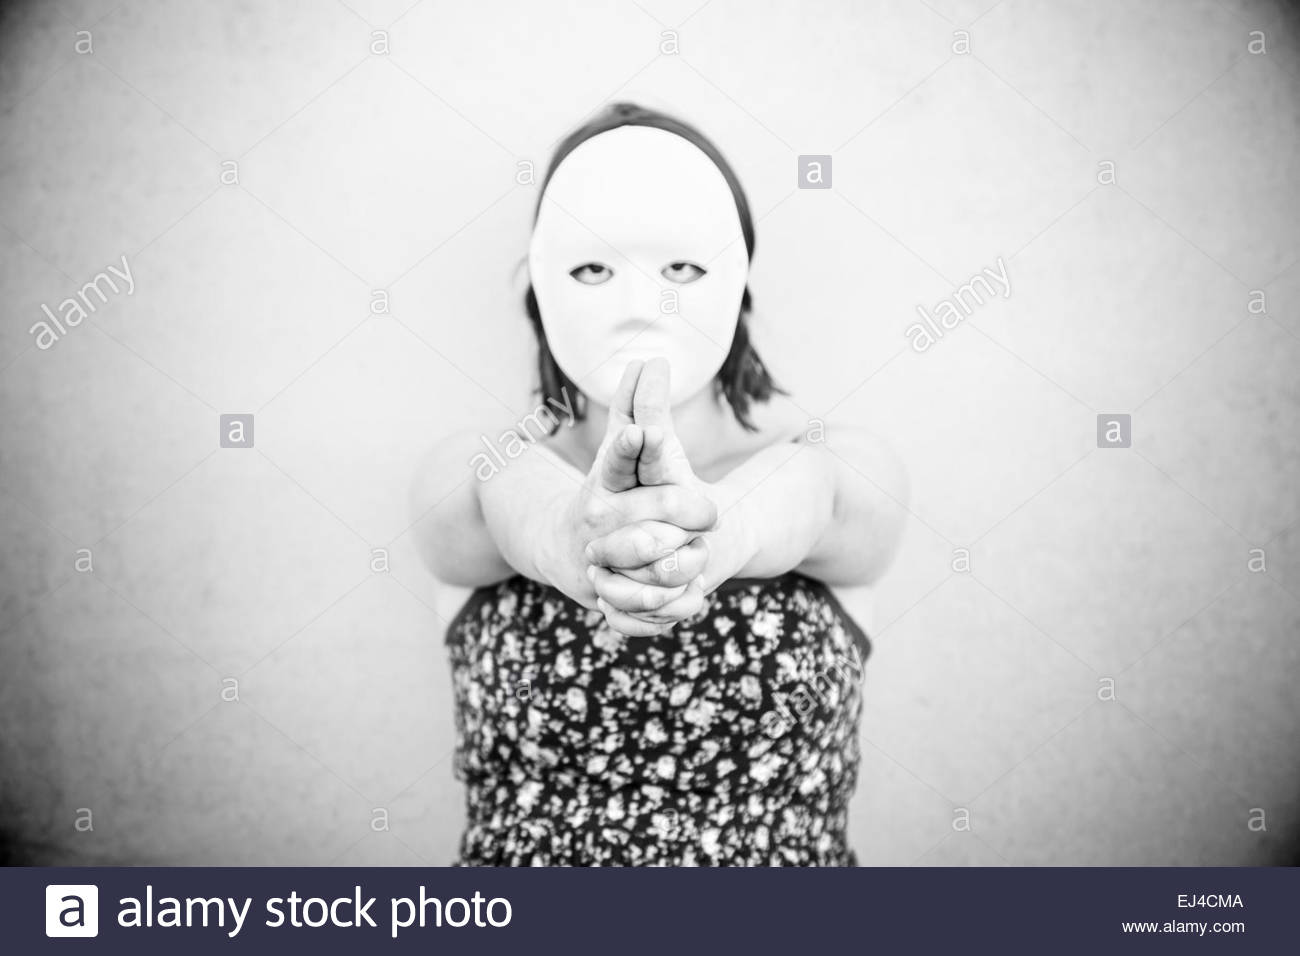 Girl in white mask on halloween, mystery - Stock Image